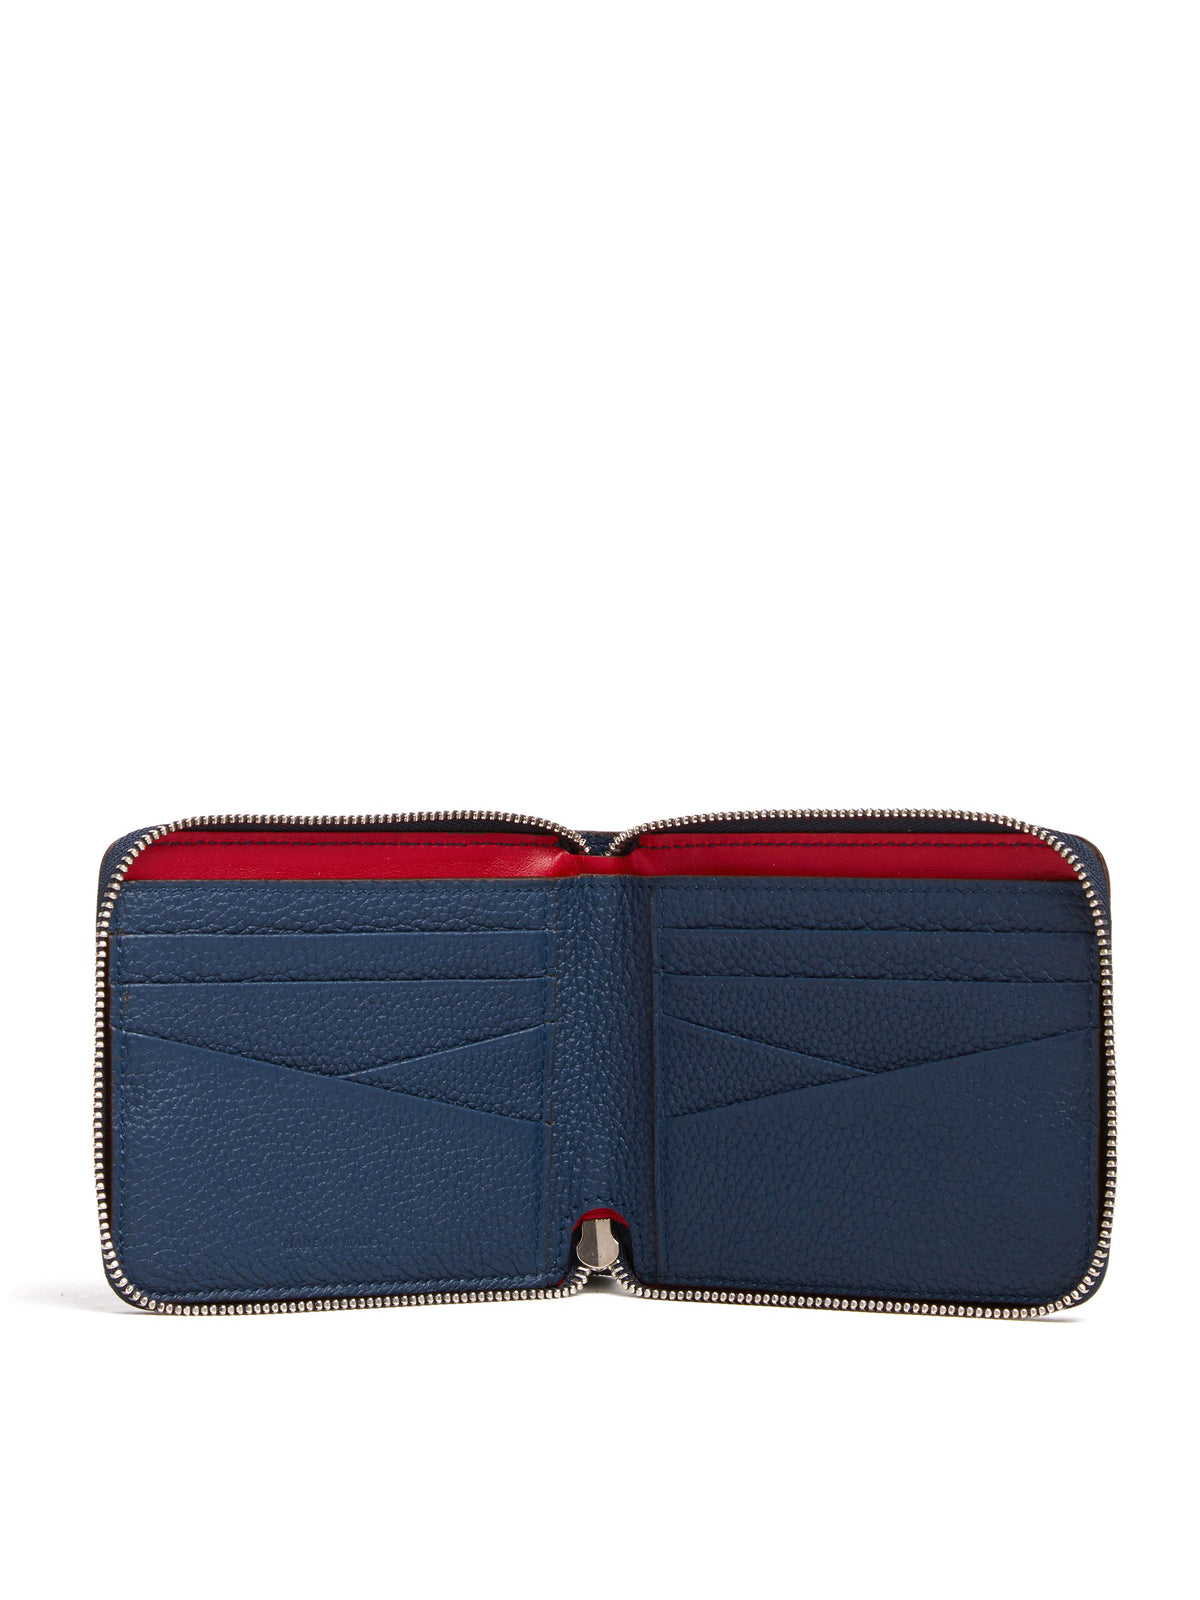 Mark Cross Bi-Fold Leather Zip Wallet Tumbled Grain Navy Interior